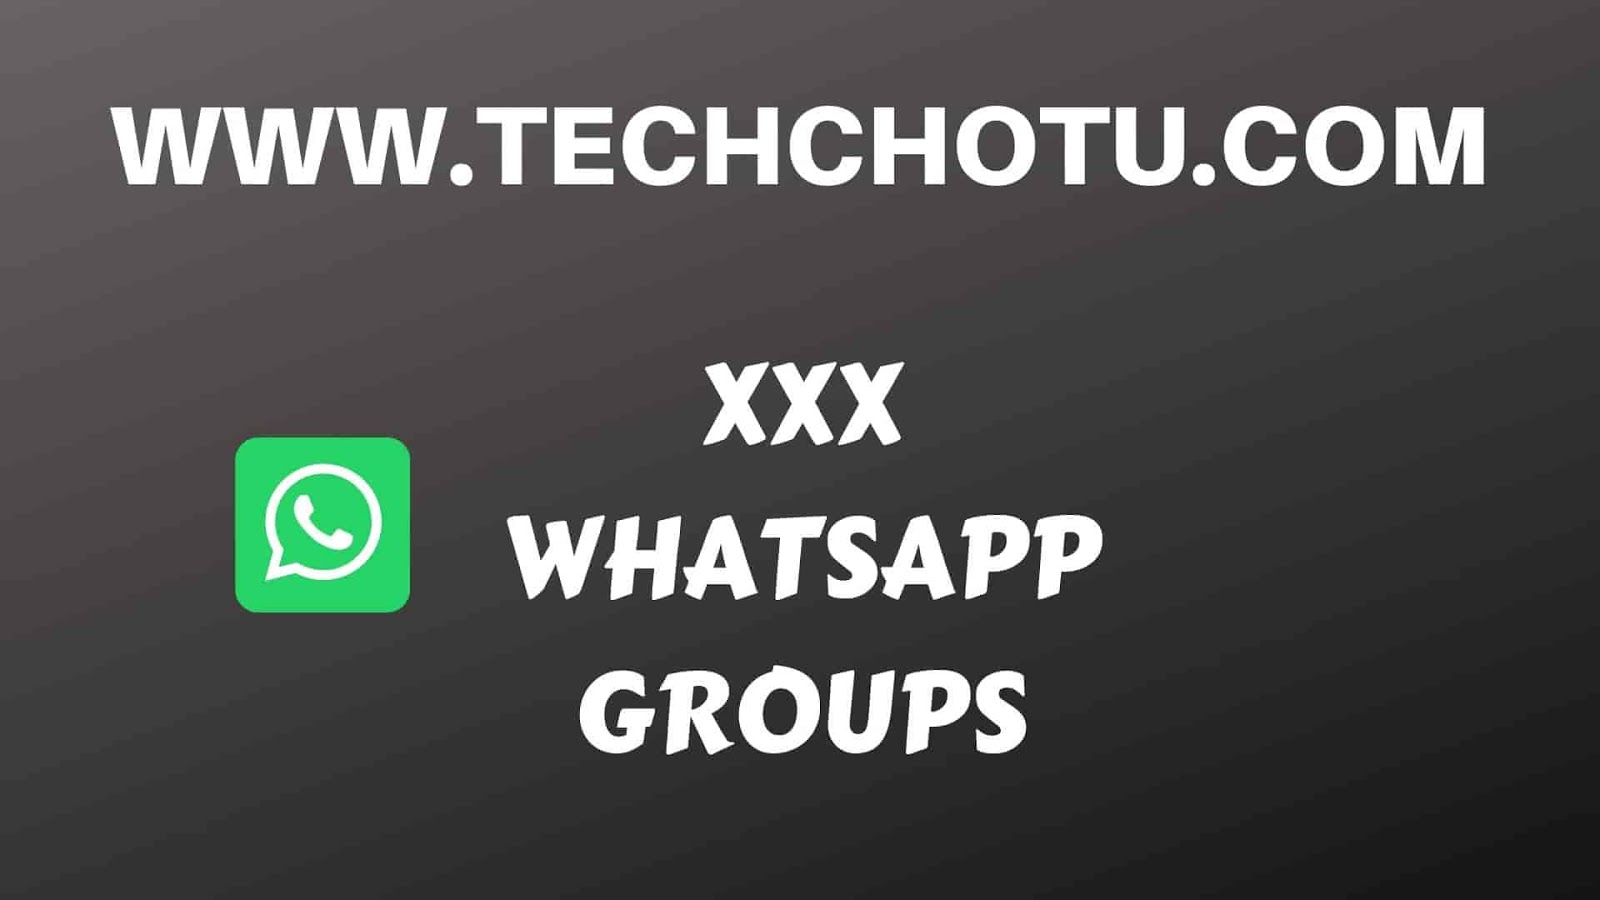 Will group on nigeria whatsapp adult chat sex congratulate, remarkable